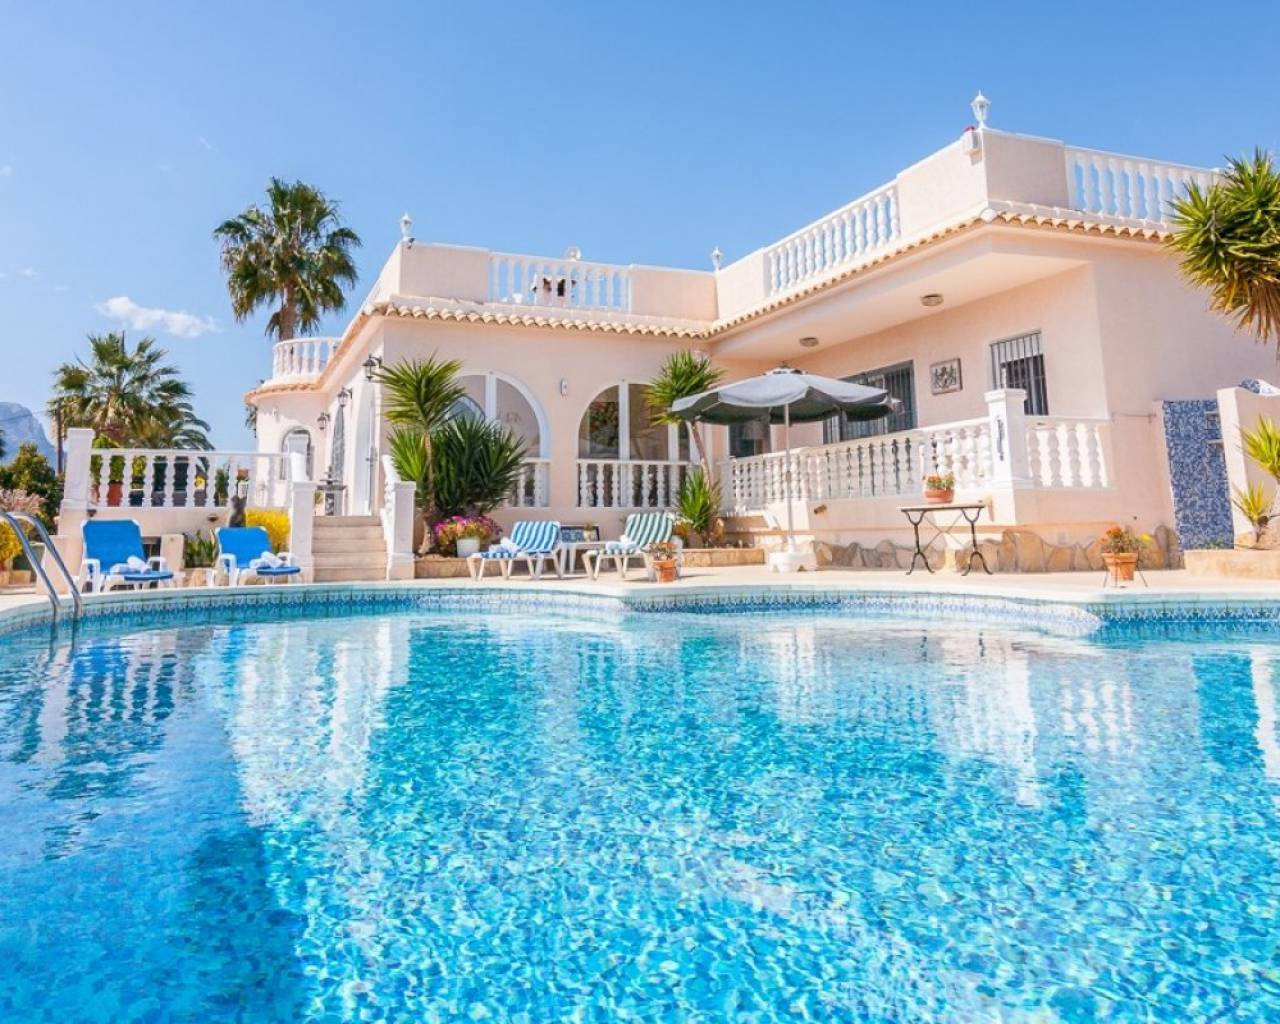 Villa - Resale - Calpe - La vallesa